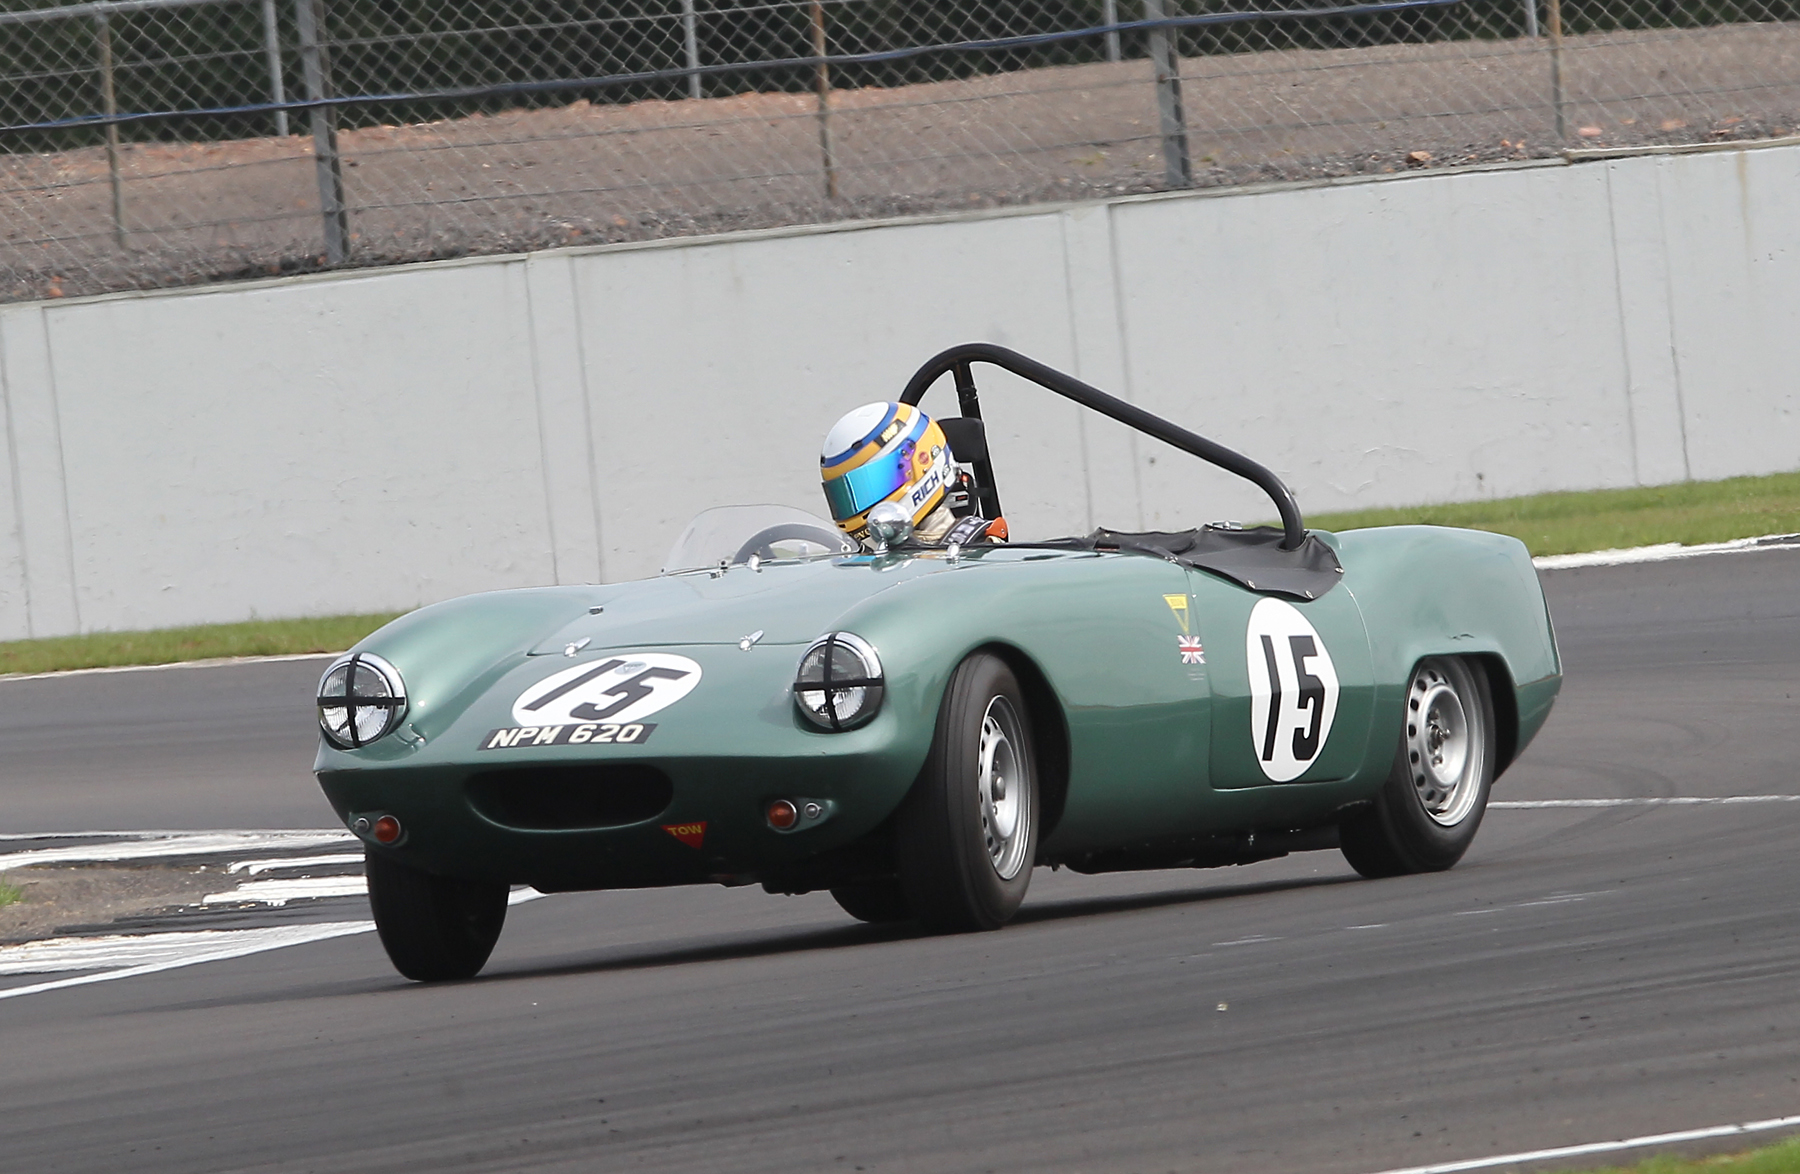 A bit of opposite lock from Richard Woolmer, leading very comfortably in the Elva Courier  Photo - Mick Walker